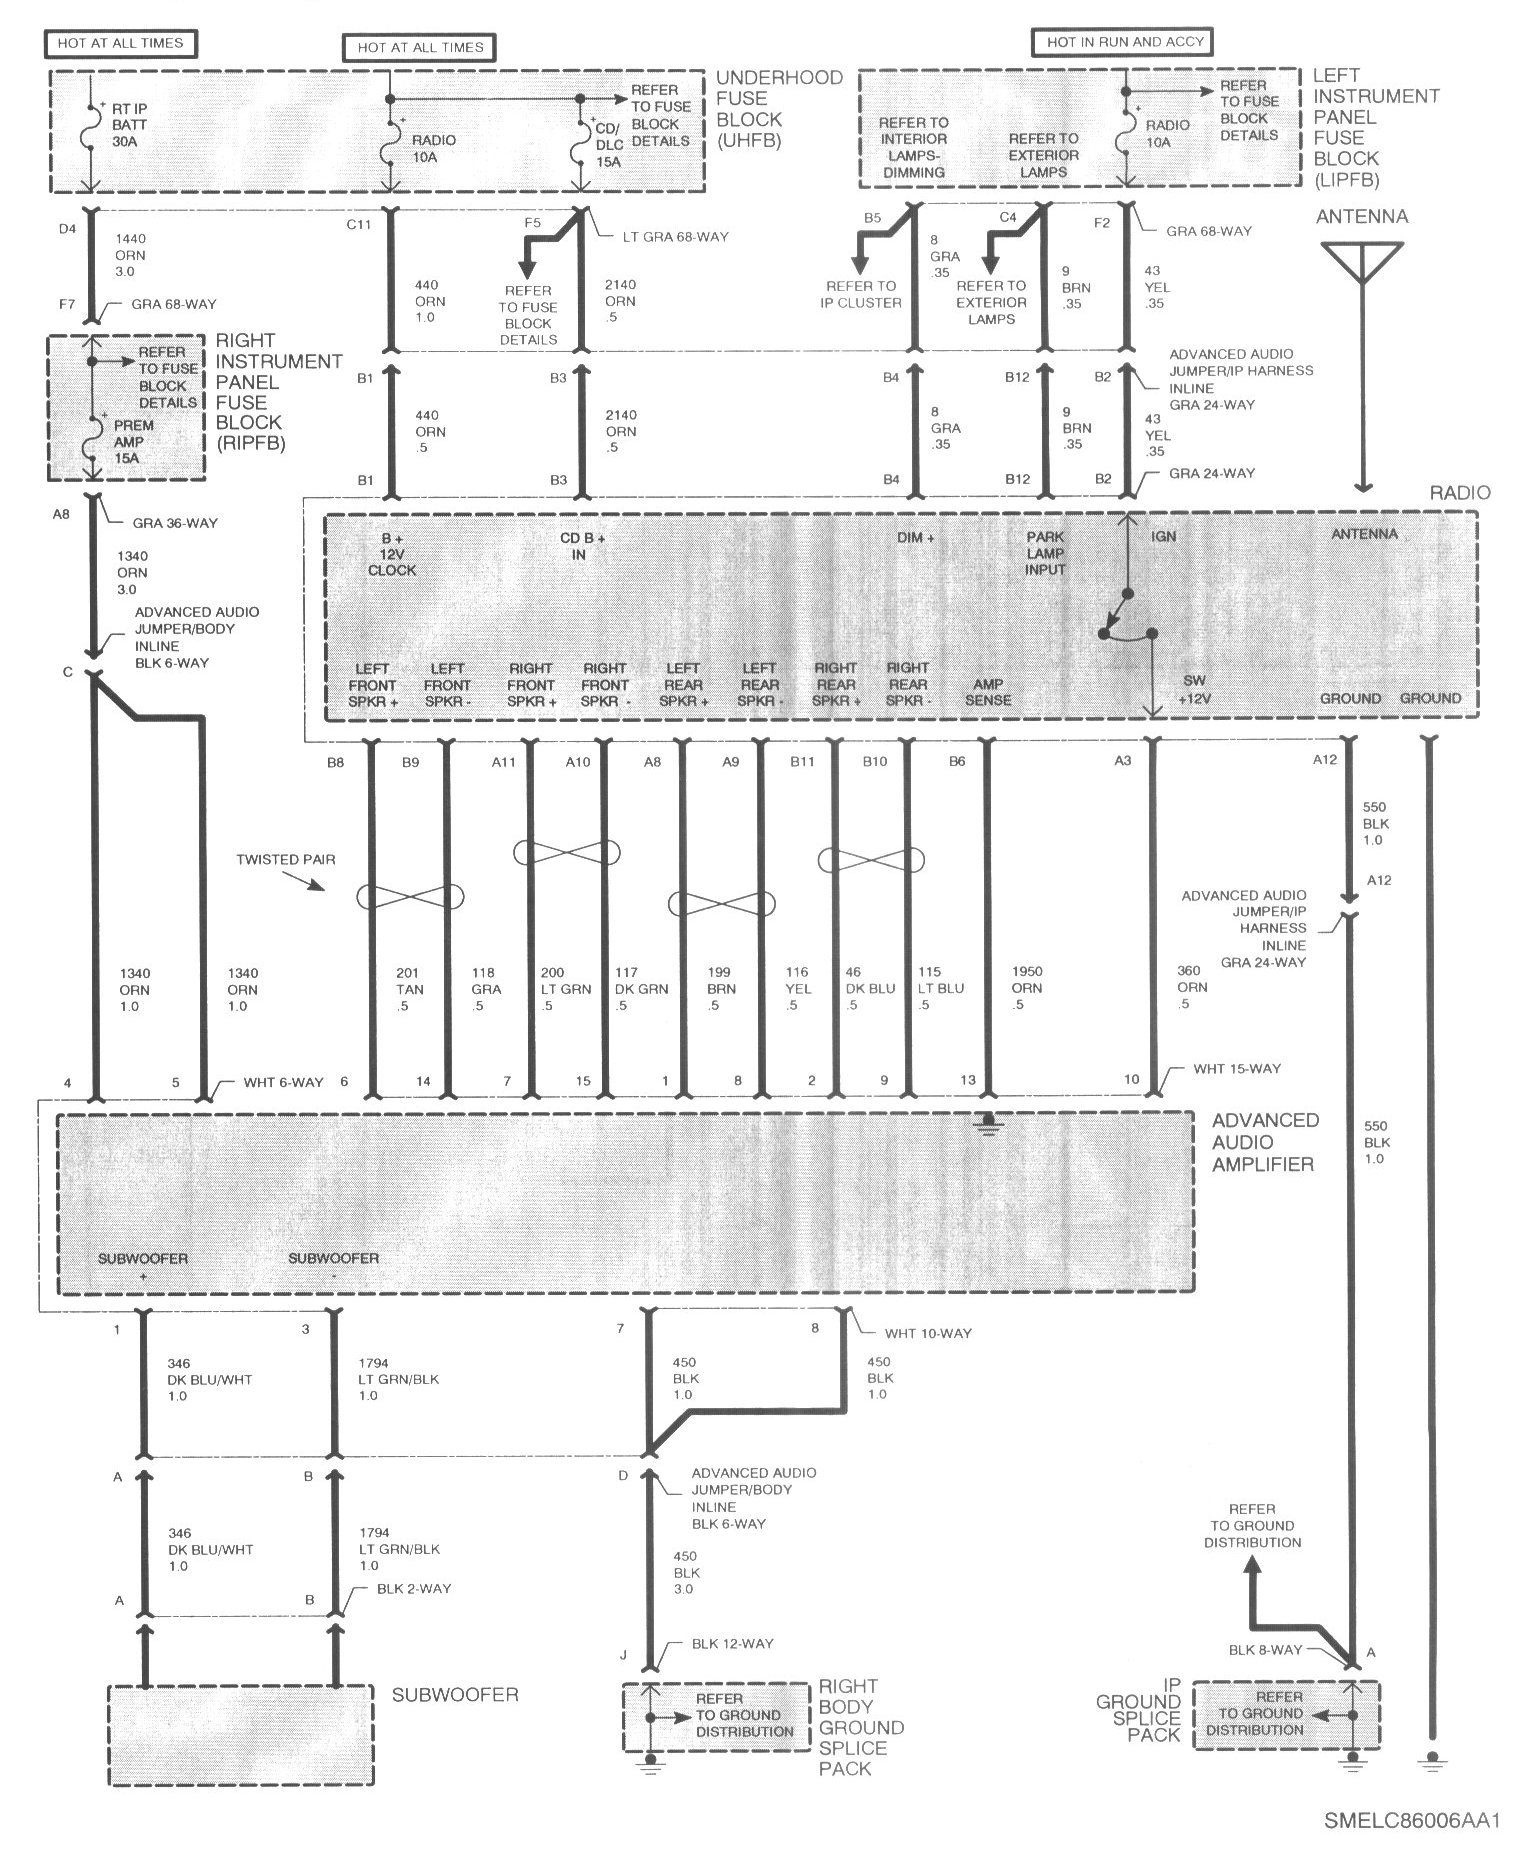 2002 Saturn L200 Wiring Diagram - Ohio Home Wiring Circuit Diagram - wiring- wiring.yenpancane.jeanjaures37.fr | Saturn L300 Wiring Diagram |  | Wiring Diagram Resource